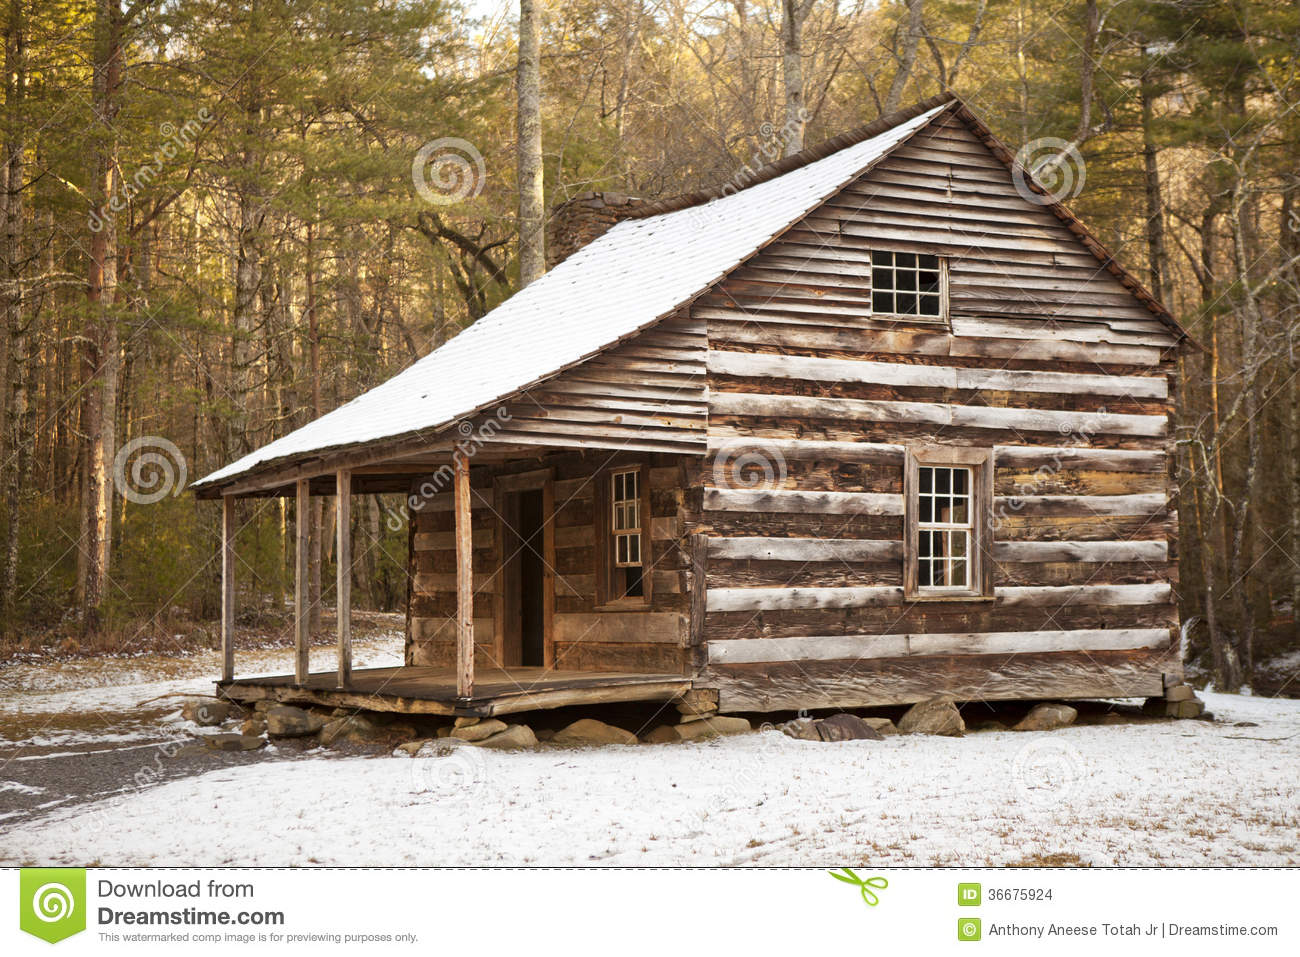 Marvelous photograph of Rustic Log Cabin In Winter Stock Images Image: 36675924 with #82A229 color and 1300x957 pixels